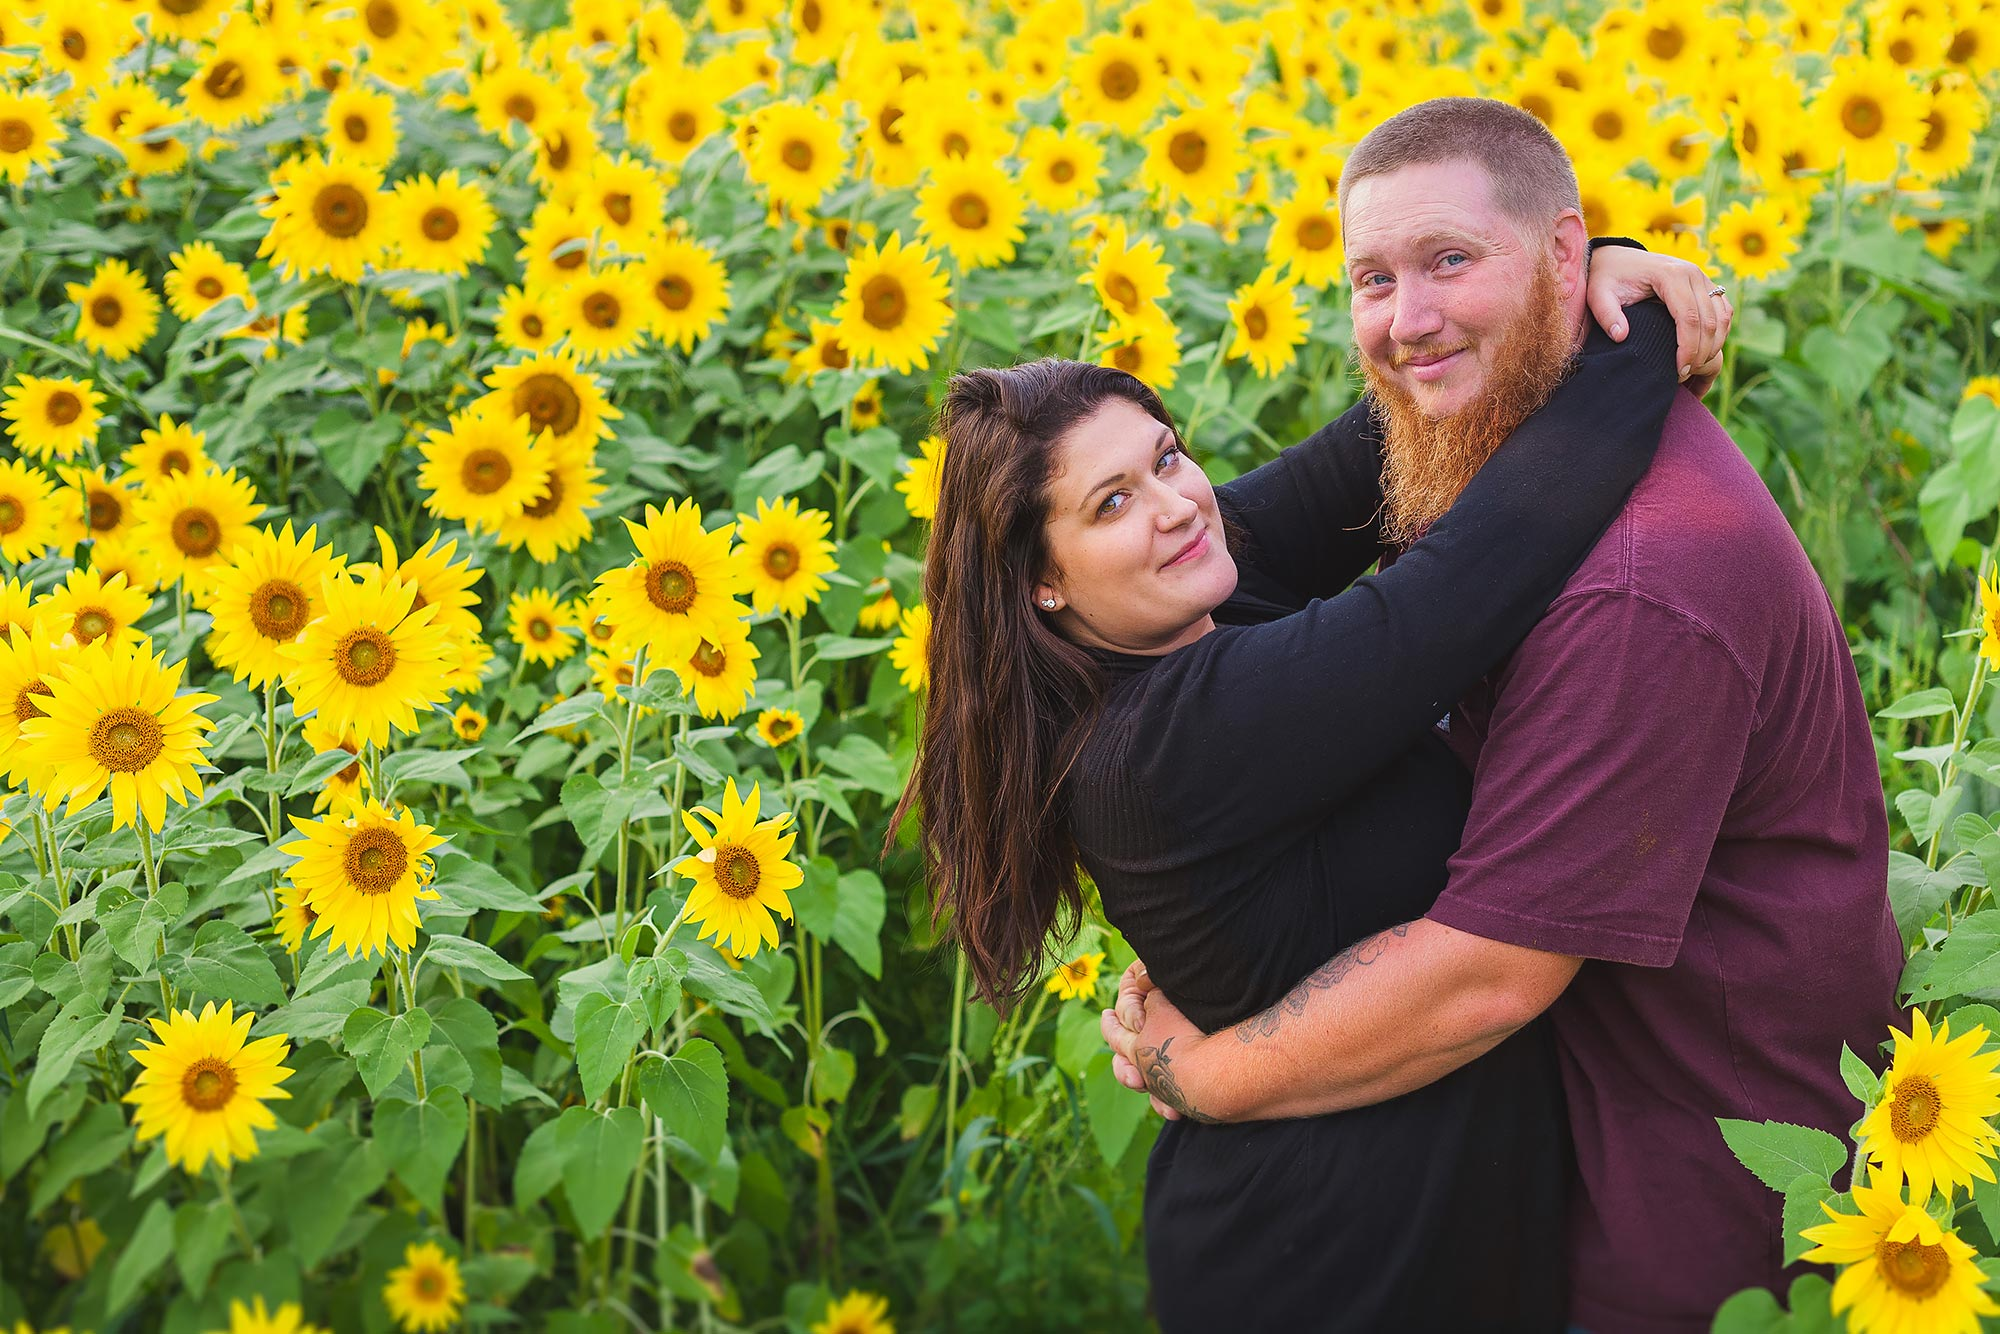 Colby Farm Sunflower Engagement Picture | Stephen Grant Photography